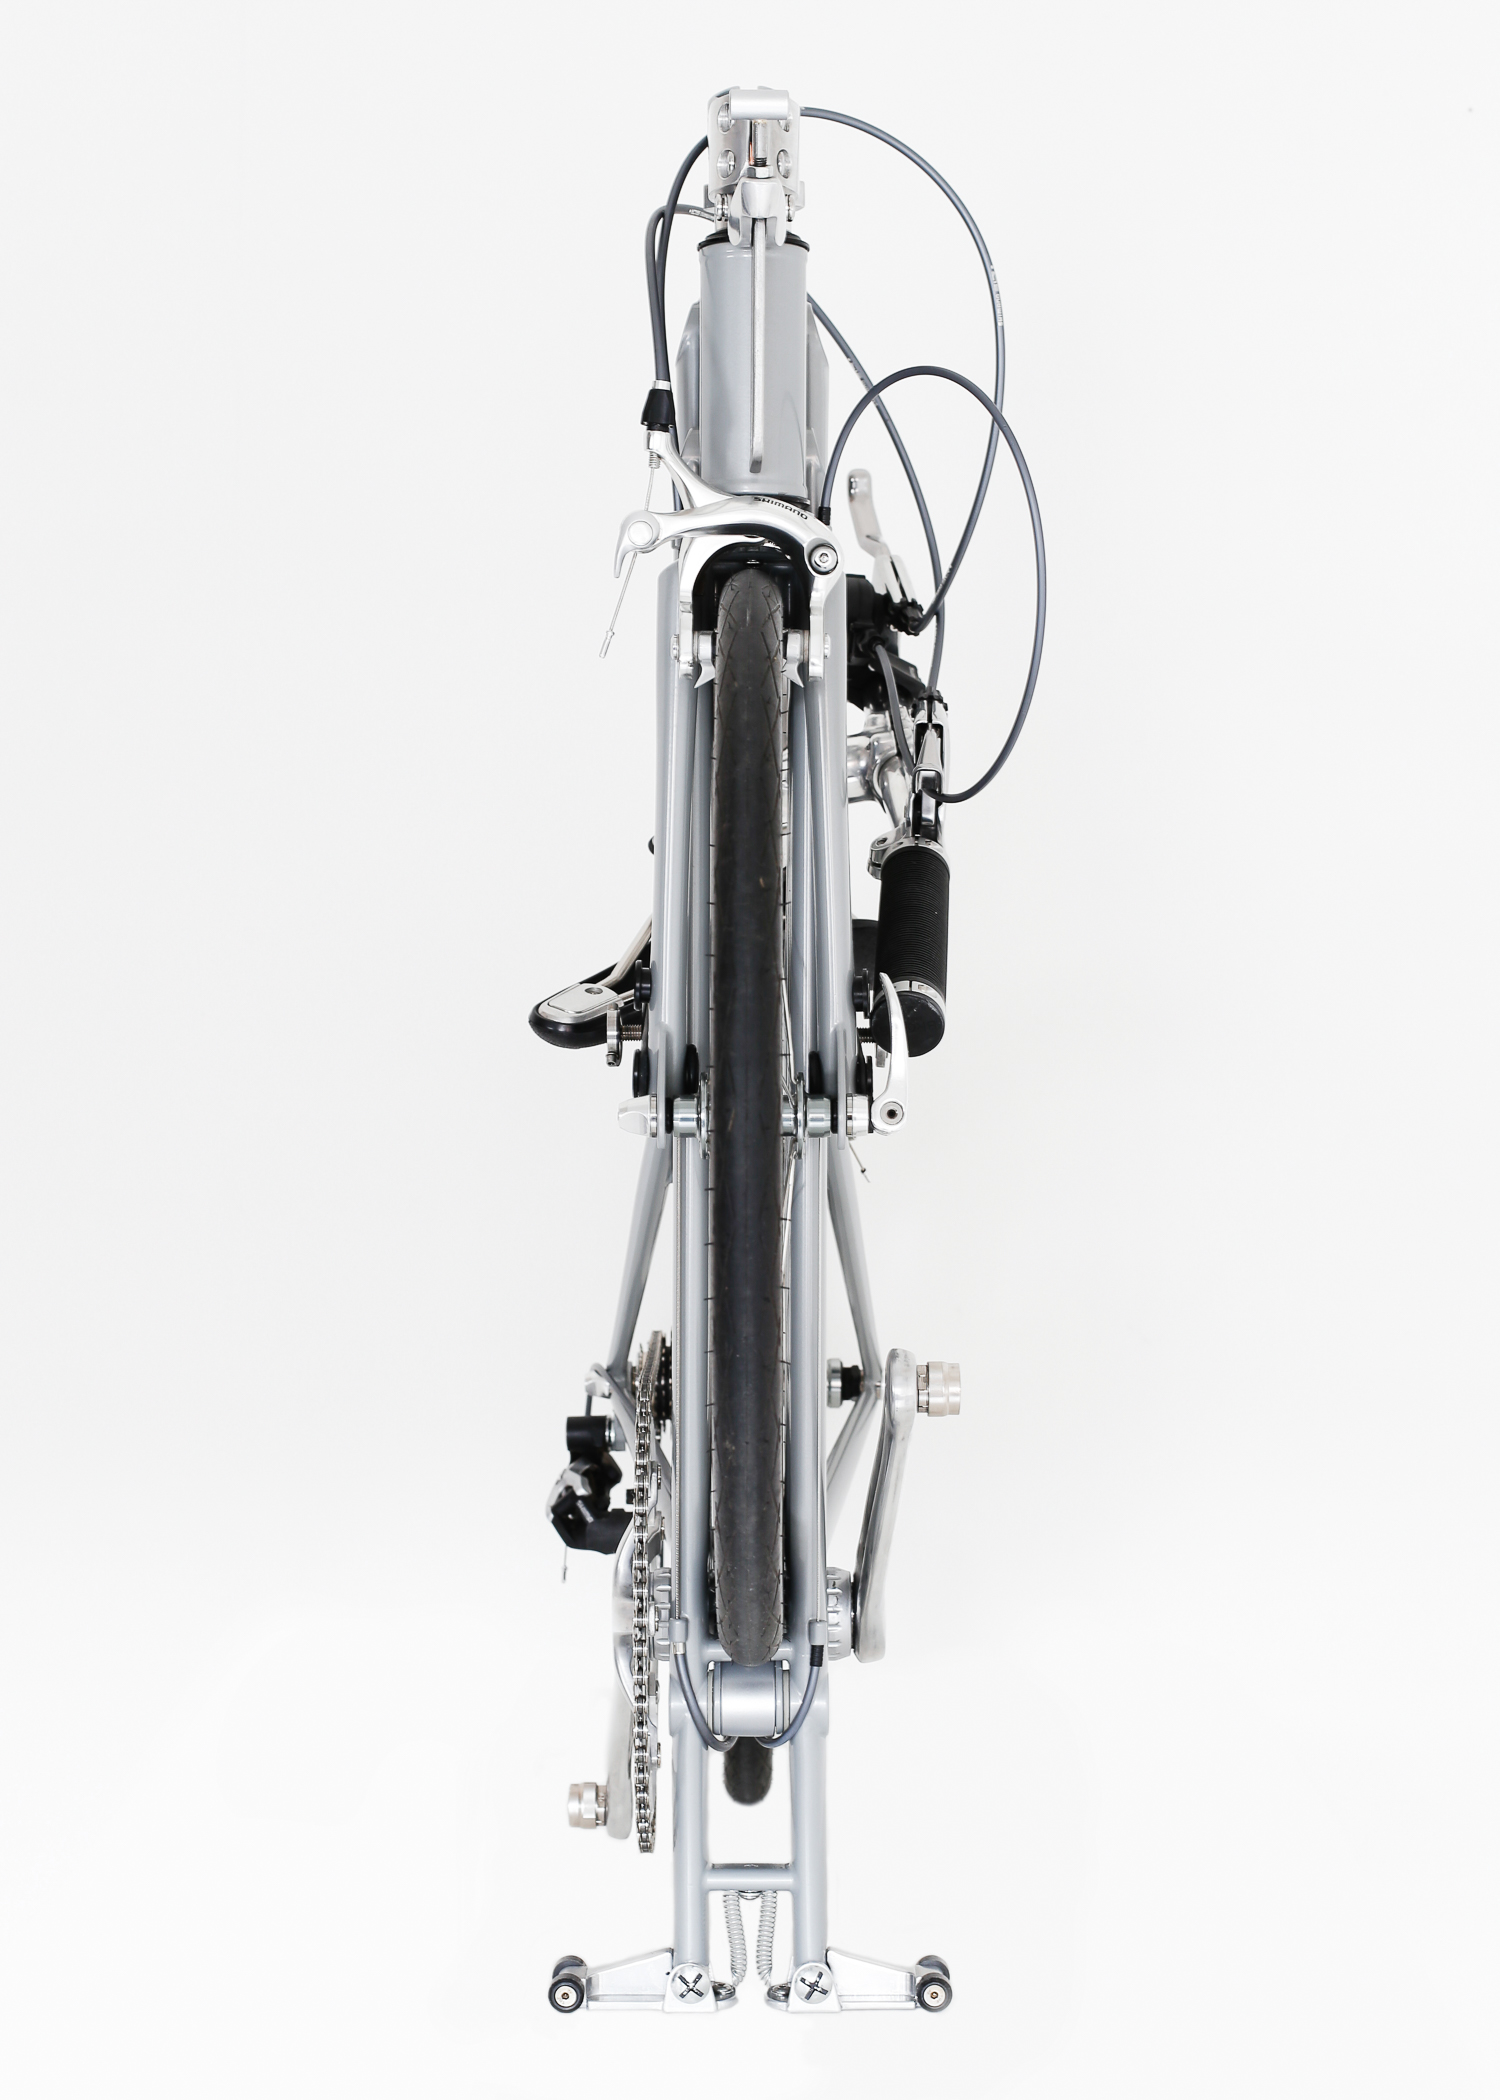 Whippet Bicycle - a new folding bicycle - slim profile